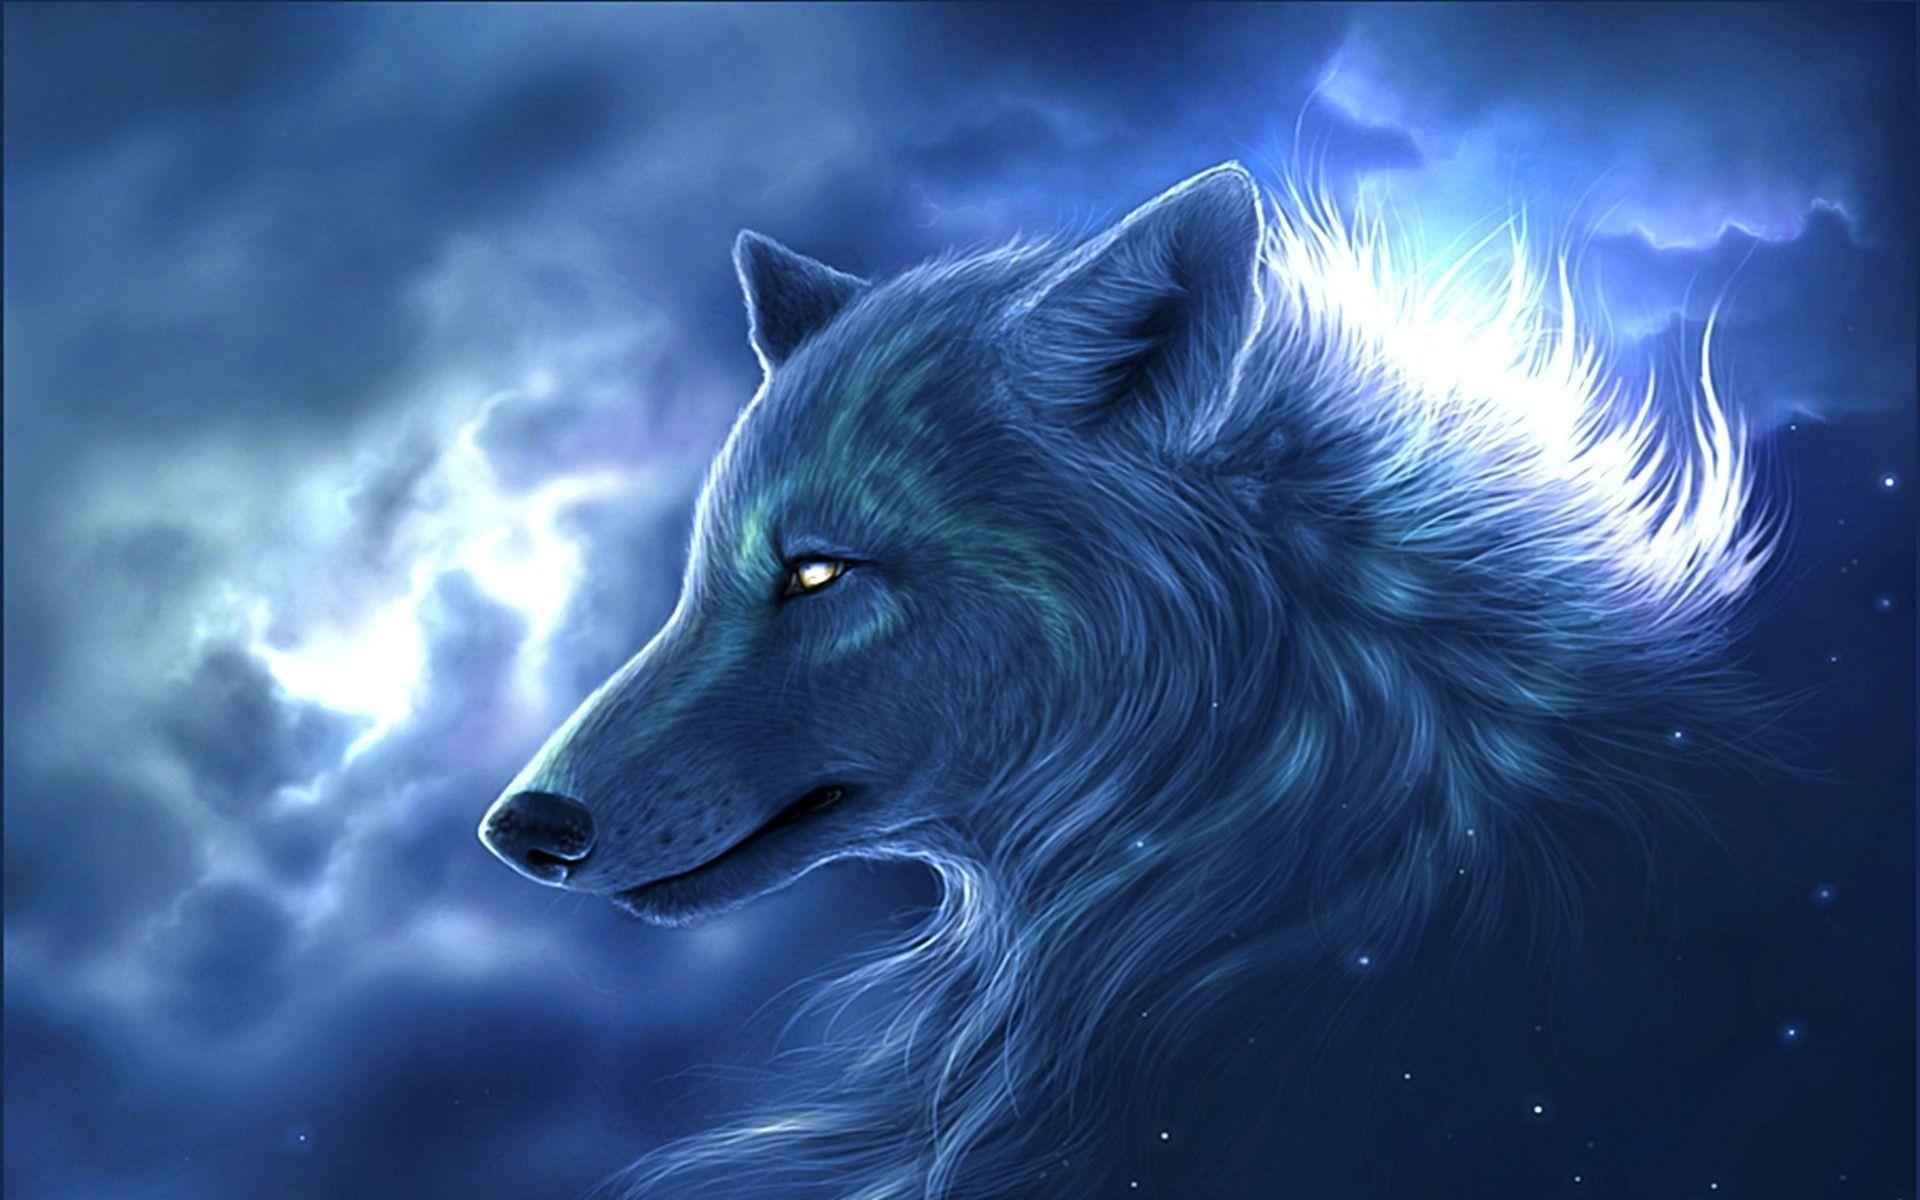 Free hd wolf wallpapers wallpaper cave wolf hd wallpapers and background voltagebd Gallery